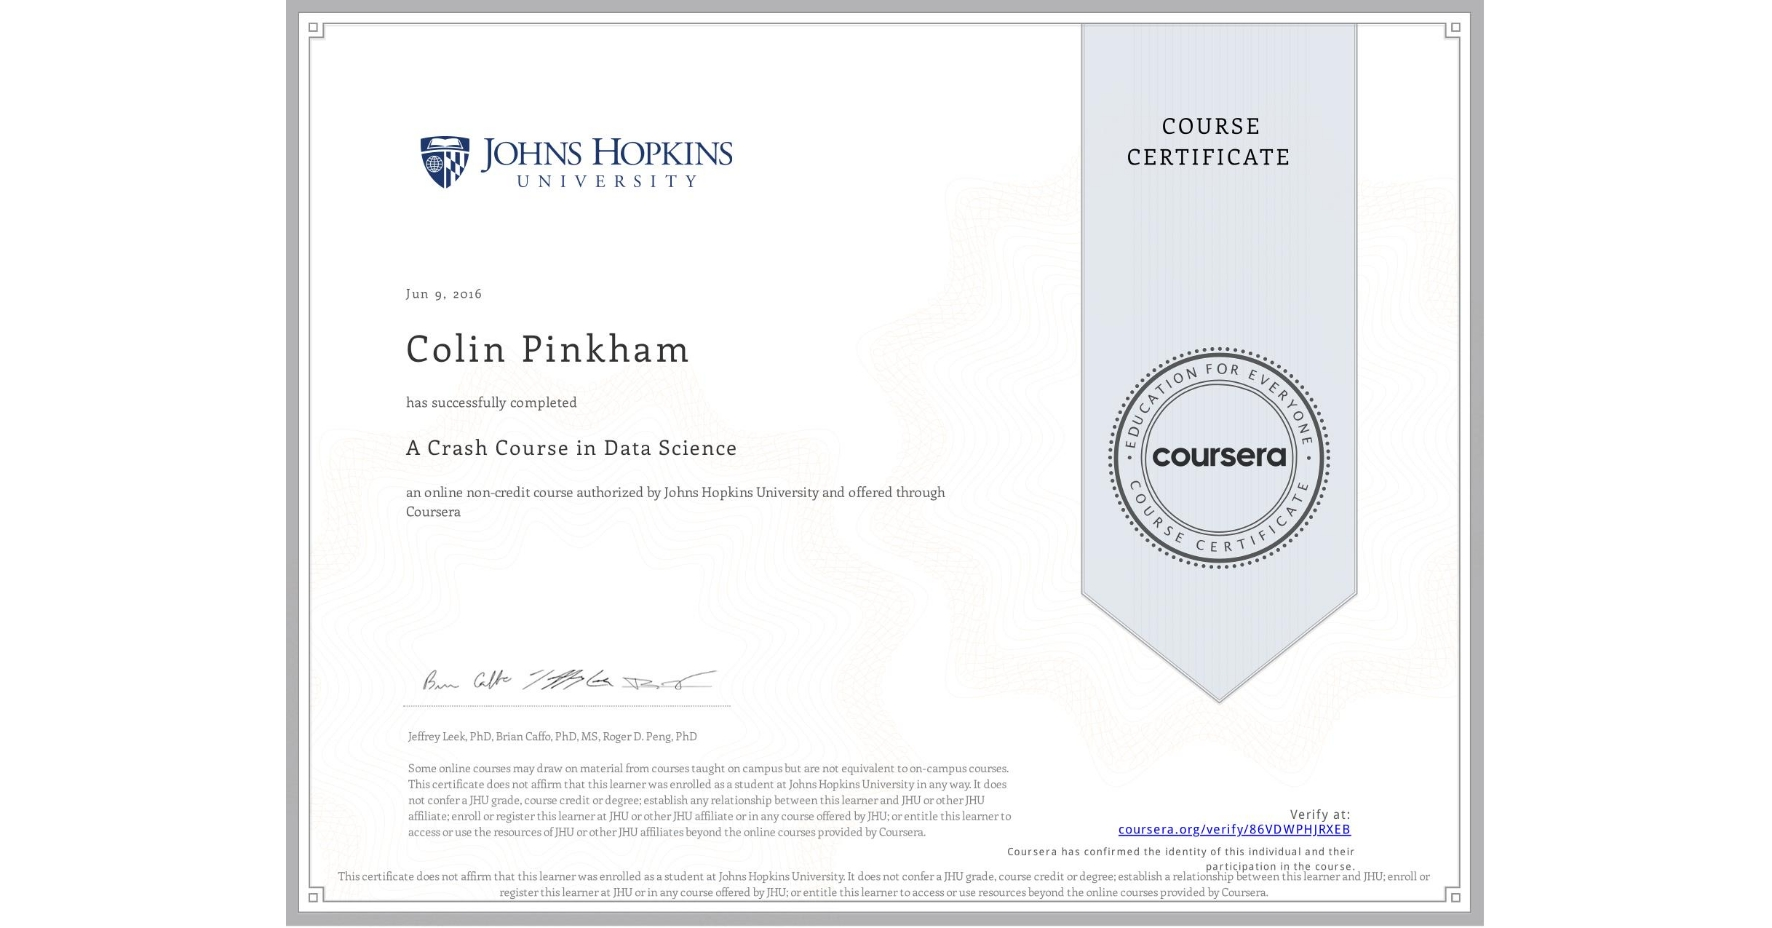 View certificate for Colin Pinkham, A Crash Course in Data Science, an online non-credit course authorized by Johns Hopkins University and offered through Coursera